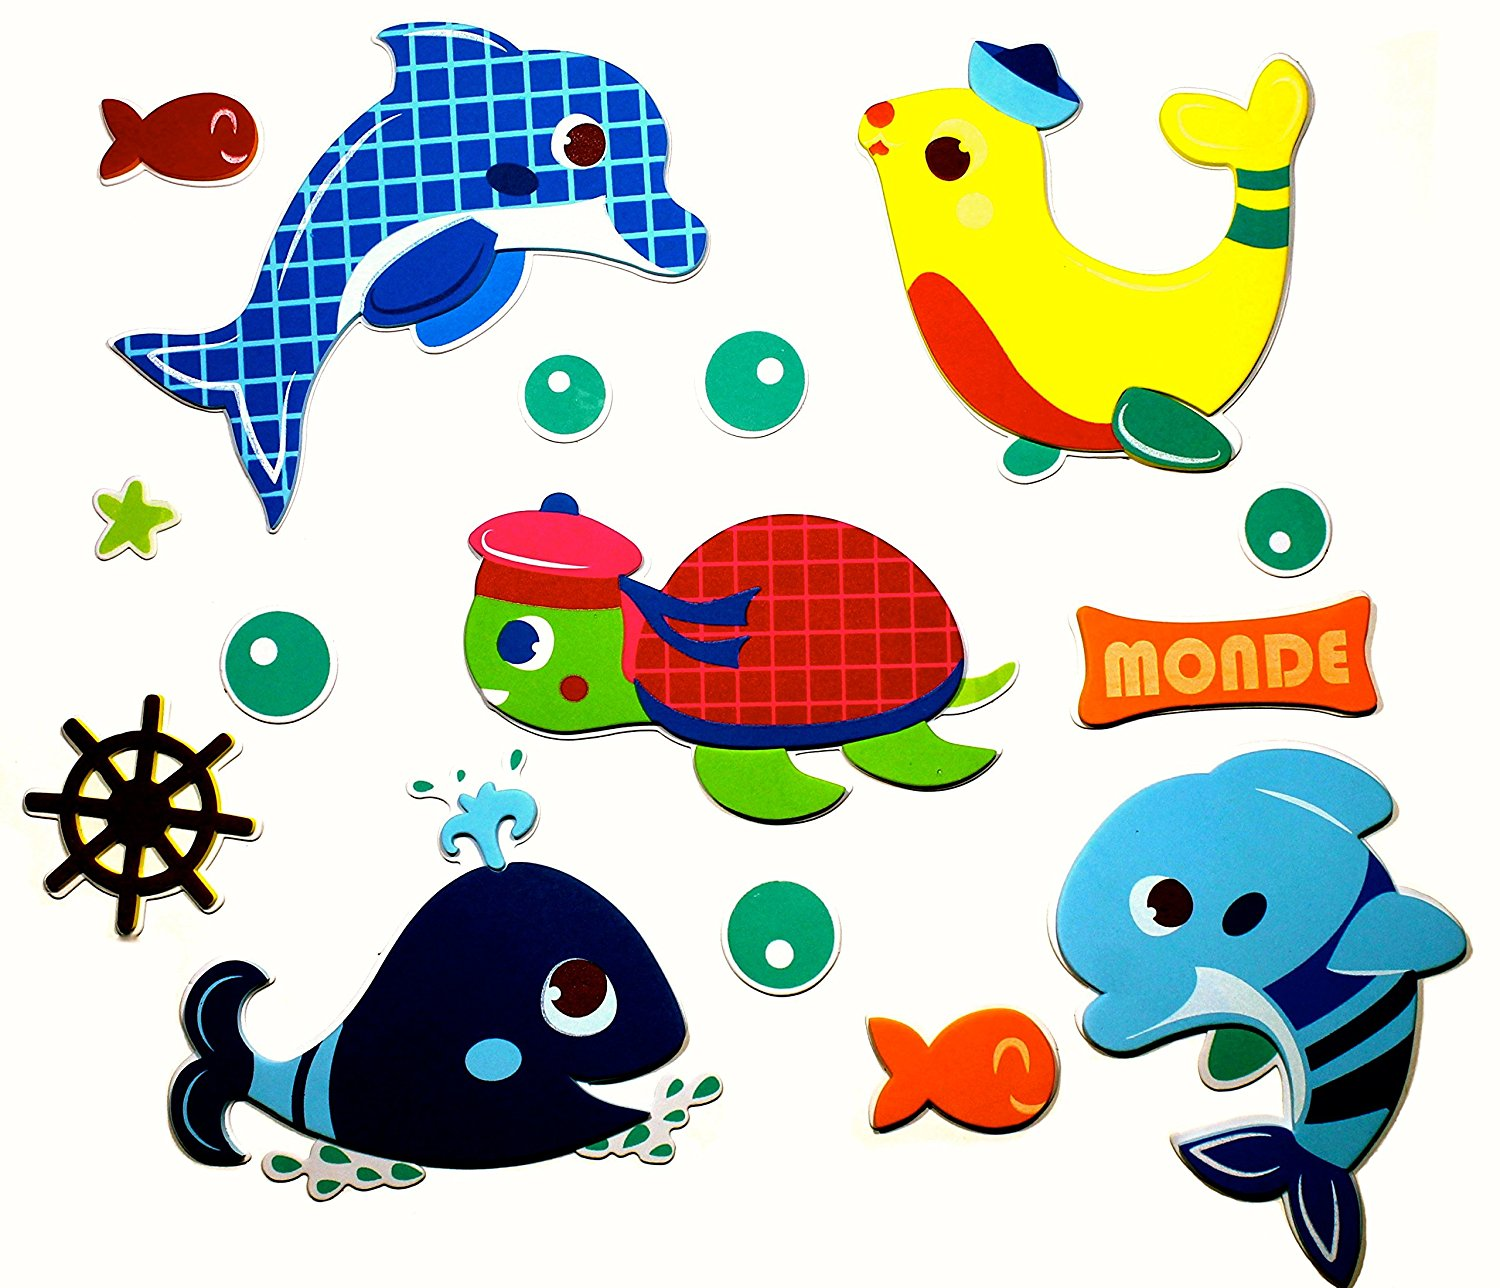 15 Premium 3D Wall Decals - Sea Creatures - Eco-Friendly - Reusable - Long Lasting - Easy Stick - Colorful - Foam Stickers - Kids Room Decals - Educational Sticker Decals - Nursery Baby Decor